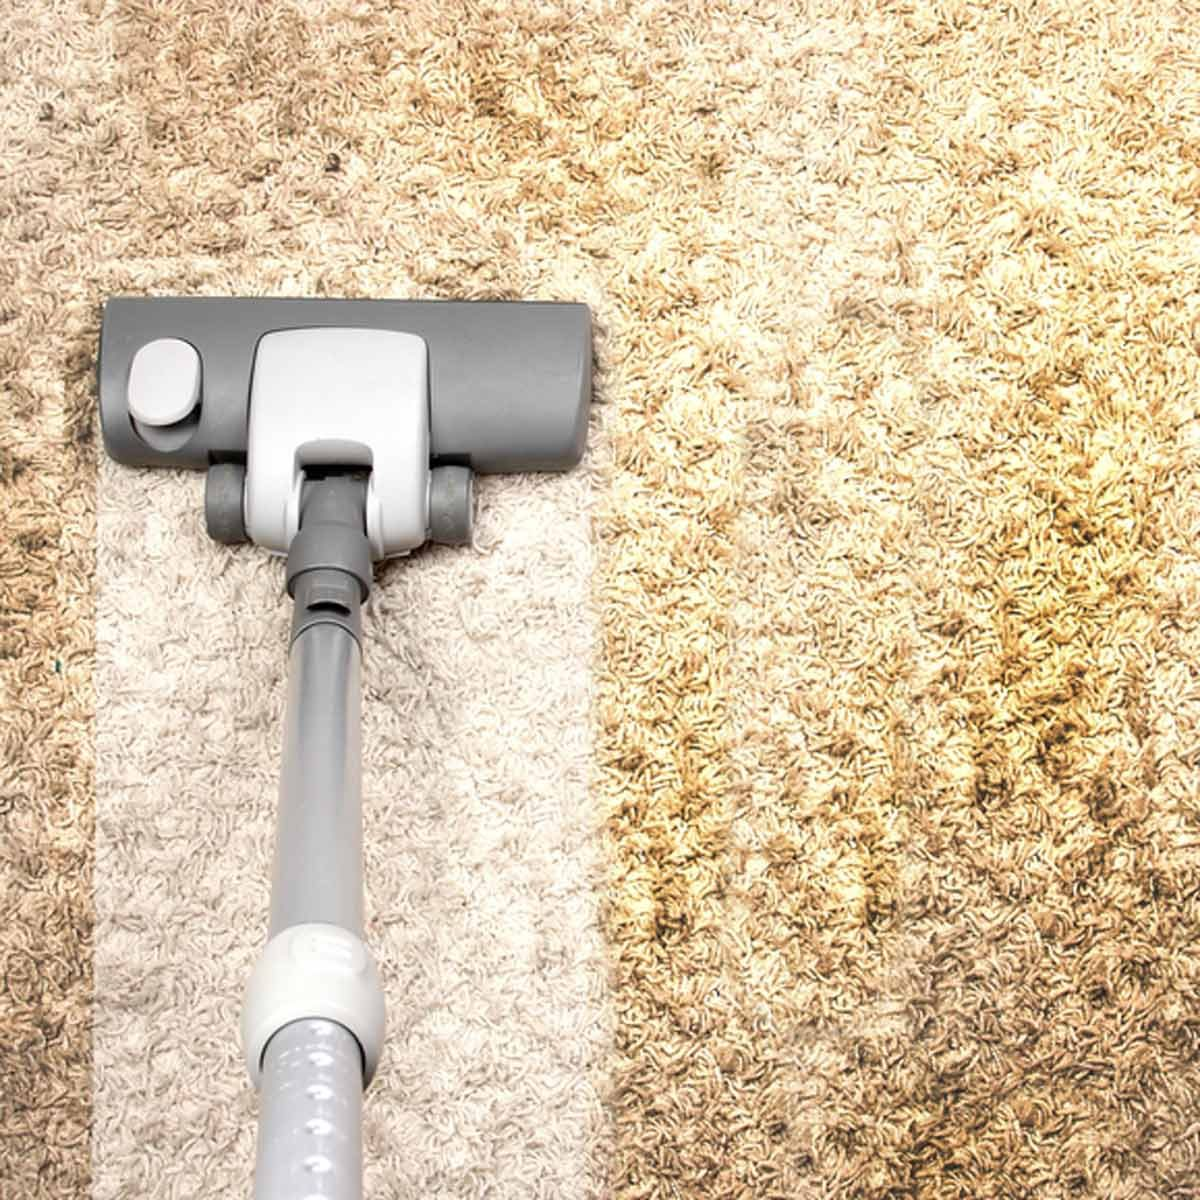 vacuum dirty carpet stains